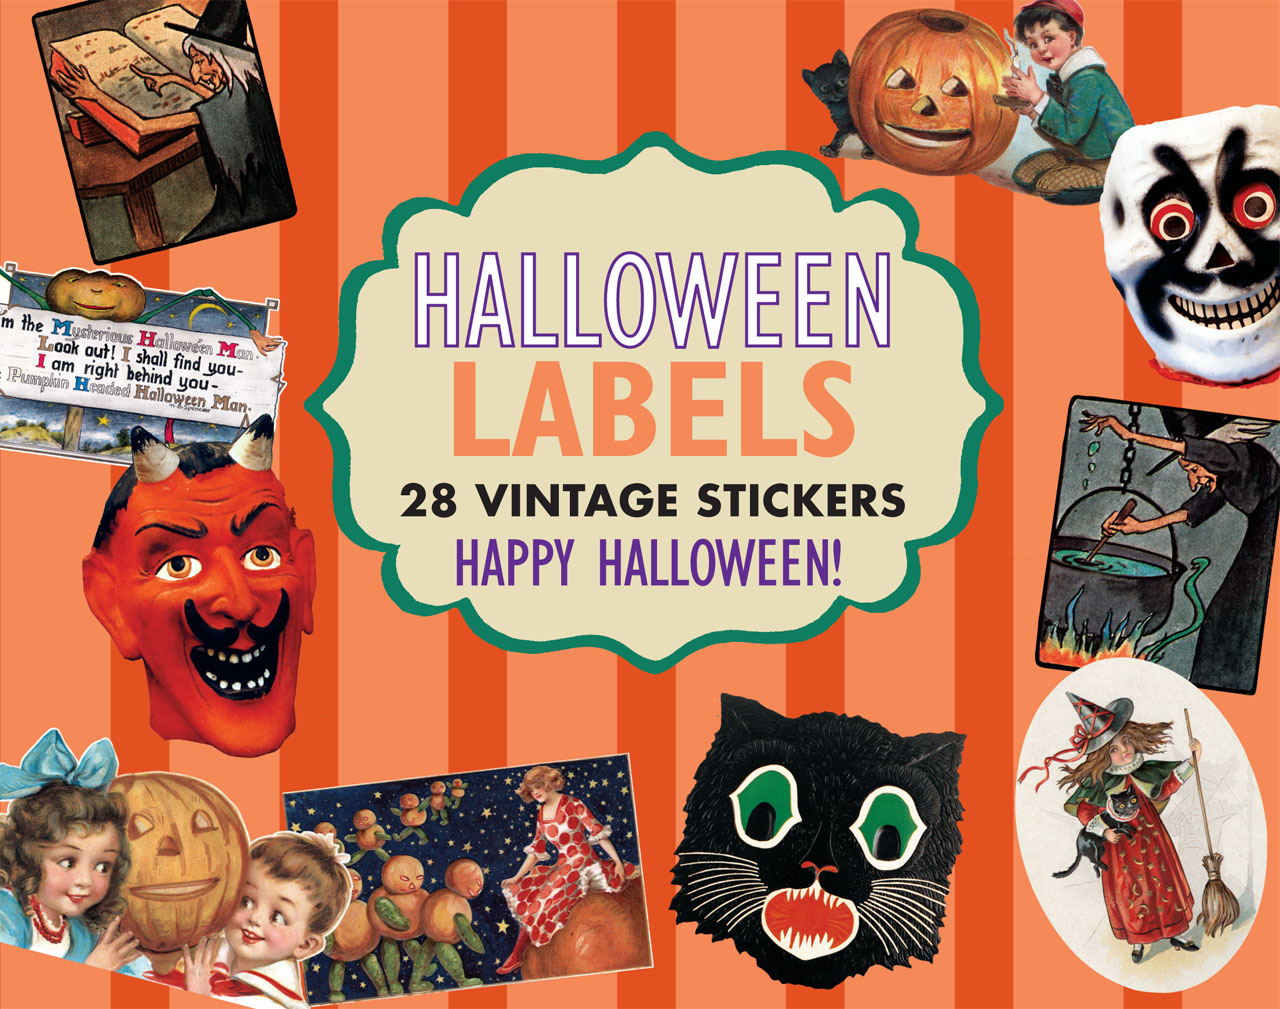 Halloween Holiday Stickers | Holiday Stickers This box of 28 die-cut stickers, suitable for gifts, invitations, decorations, scrapbooking and general spooky crafting, includes black cats, jack-o-lanterns, witches, parties, costumes, apple bobbing, trick-or-treating, and more. Our sources are as varied as our subjectschildren's books, magazine illustrations and covers, calendar art, scraps, decorations, posters, etc.